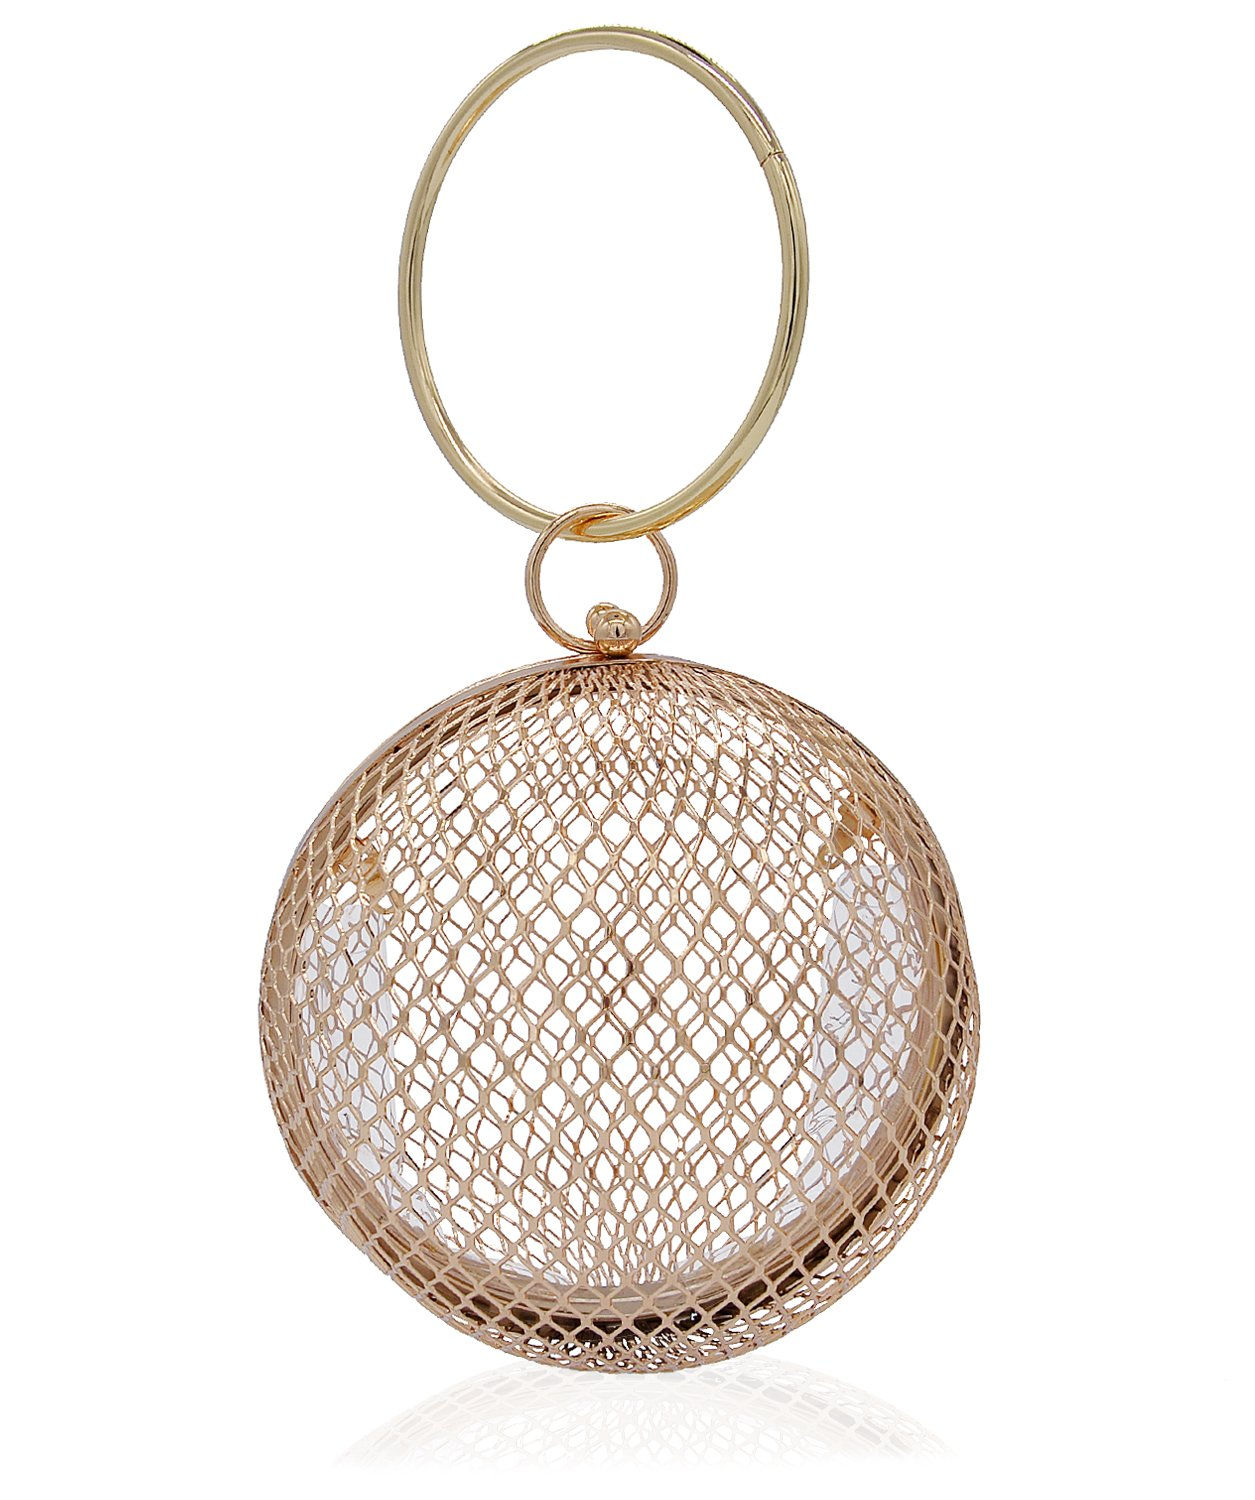 Miuco Women Chain Crossbody Bags Hollow Out Cage Metal Round Clutch Gold